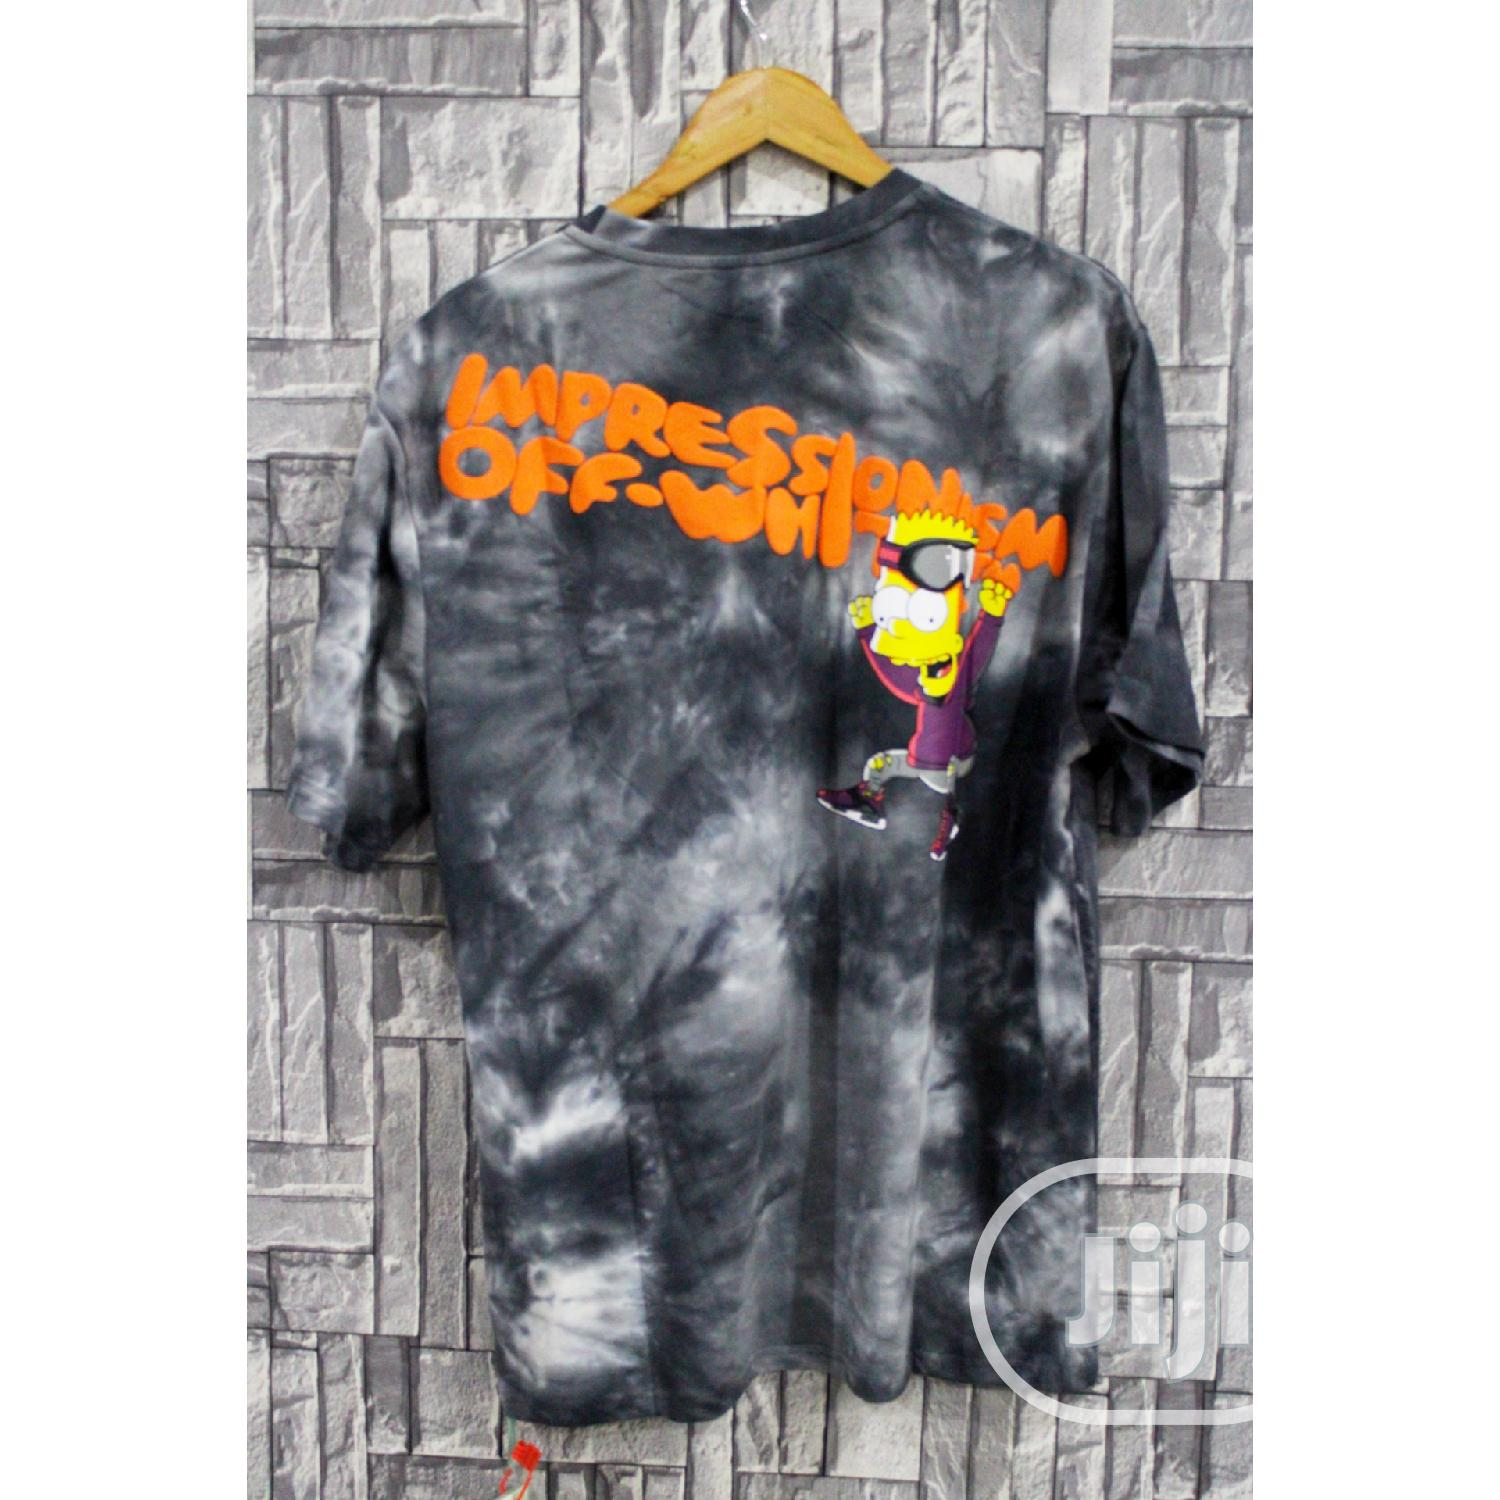 Offwhite T Shirt   Clothing for sale in Lekki, Lagos State, Nigeria